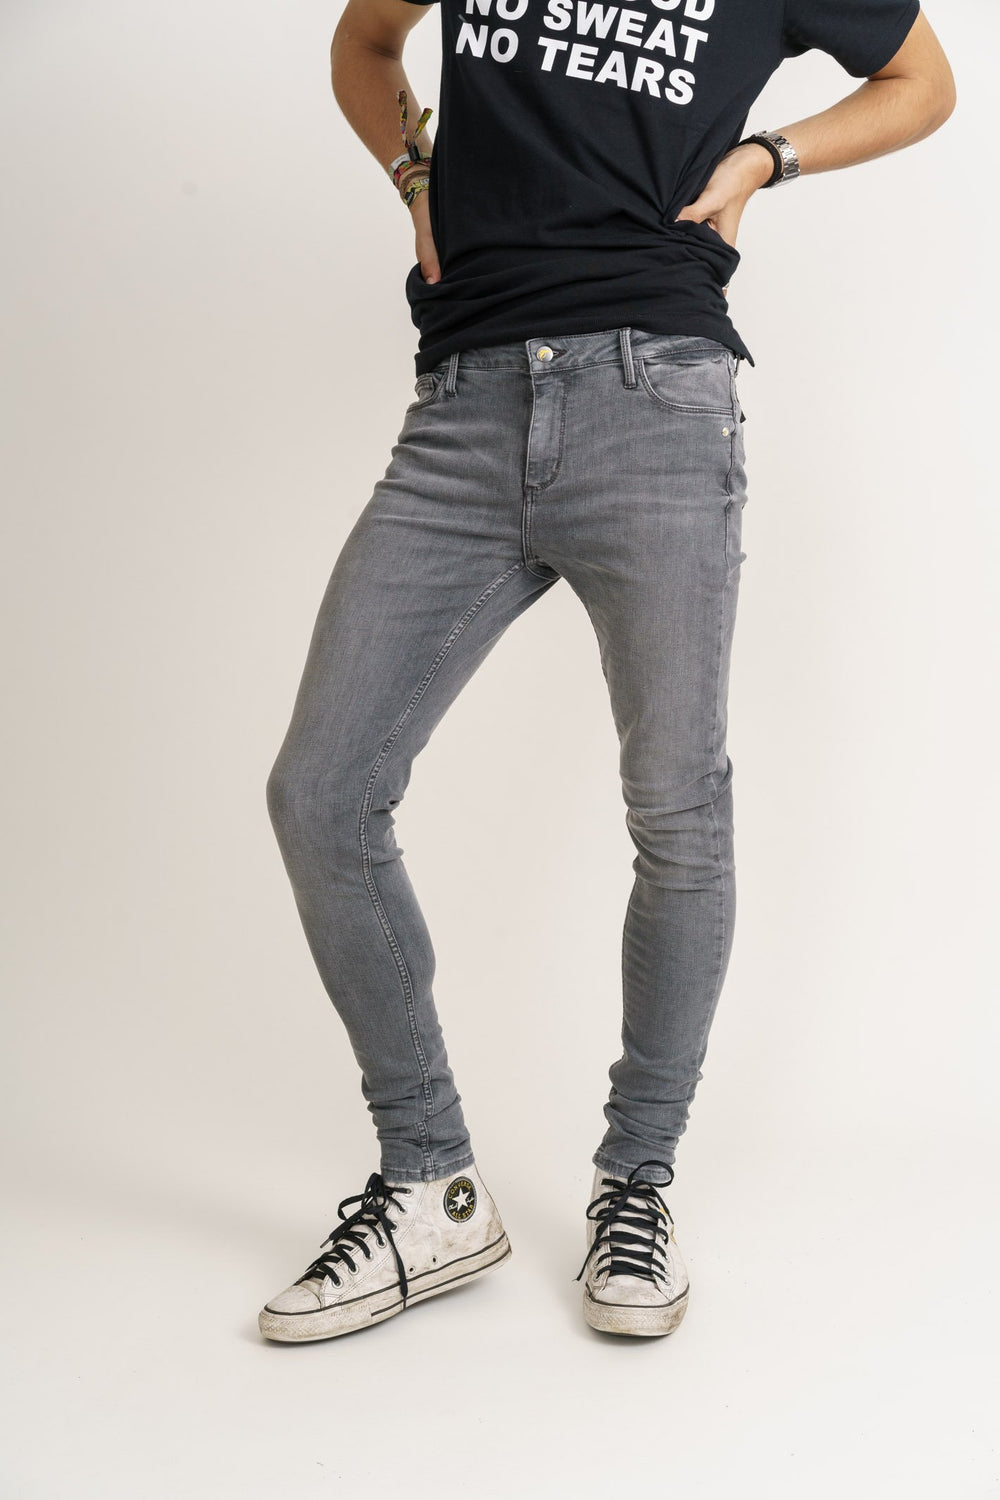 CODY // Organic Flex Super Skinny Mid Rise Jeans in Light Grey Wash - Monkee Genes Organic Jeans Denim - Men's Silhouette Monkee Genes Official  Monkee Genes Official